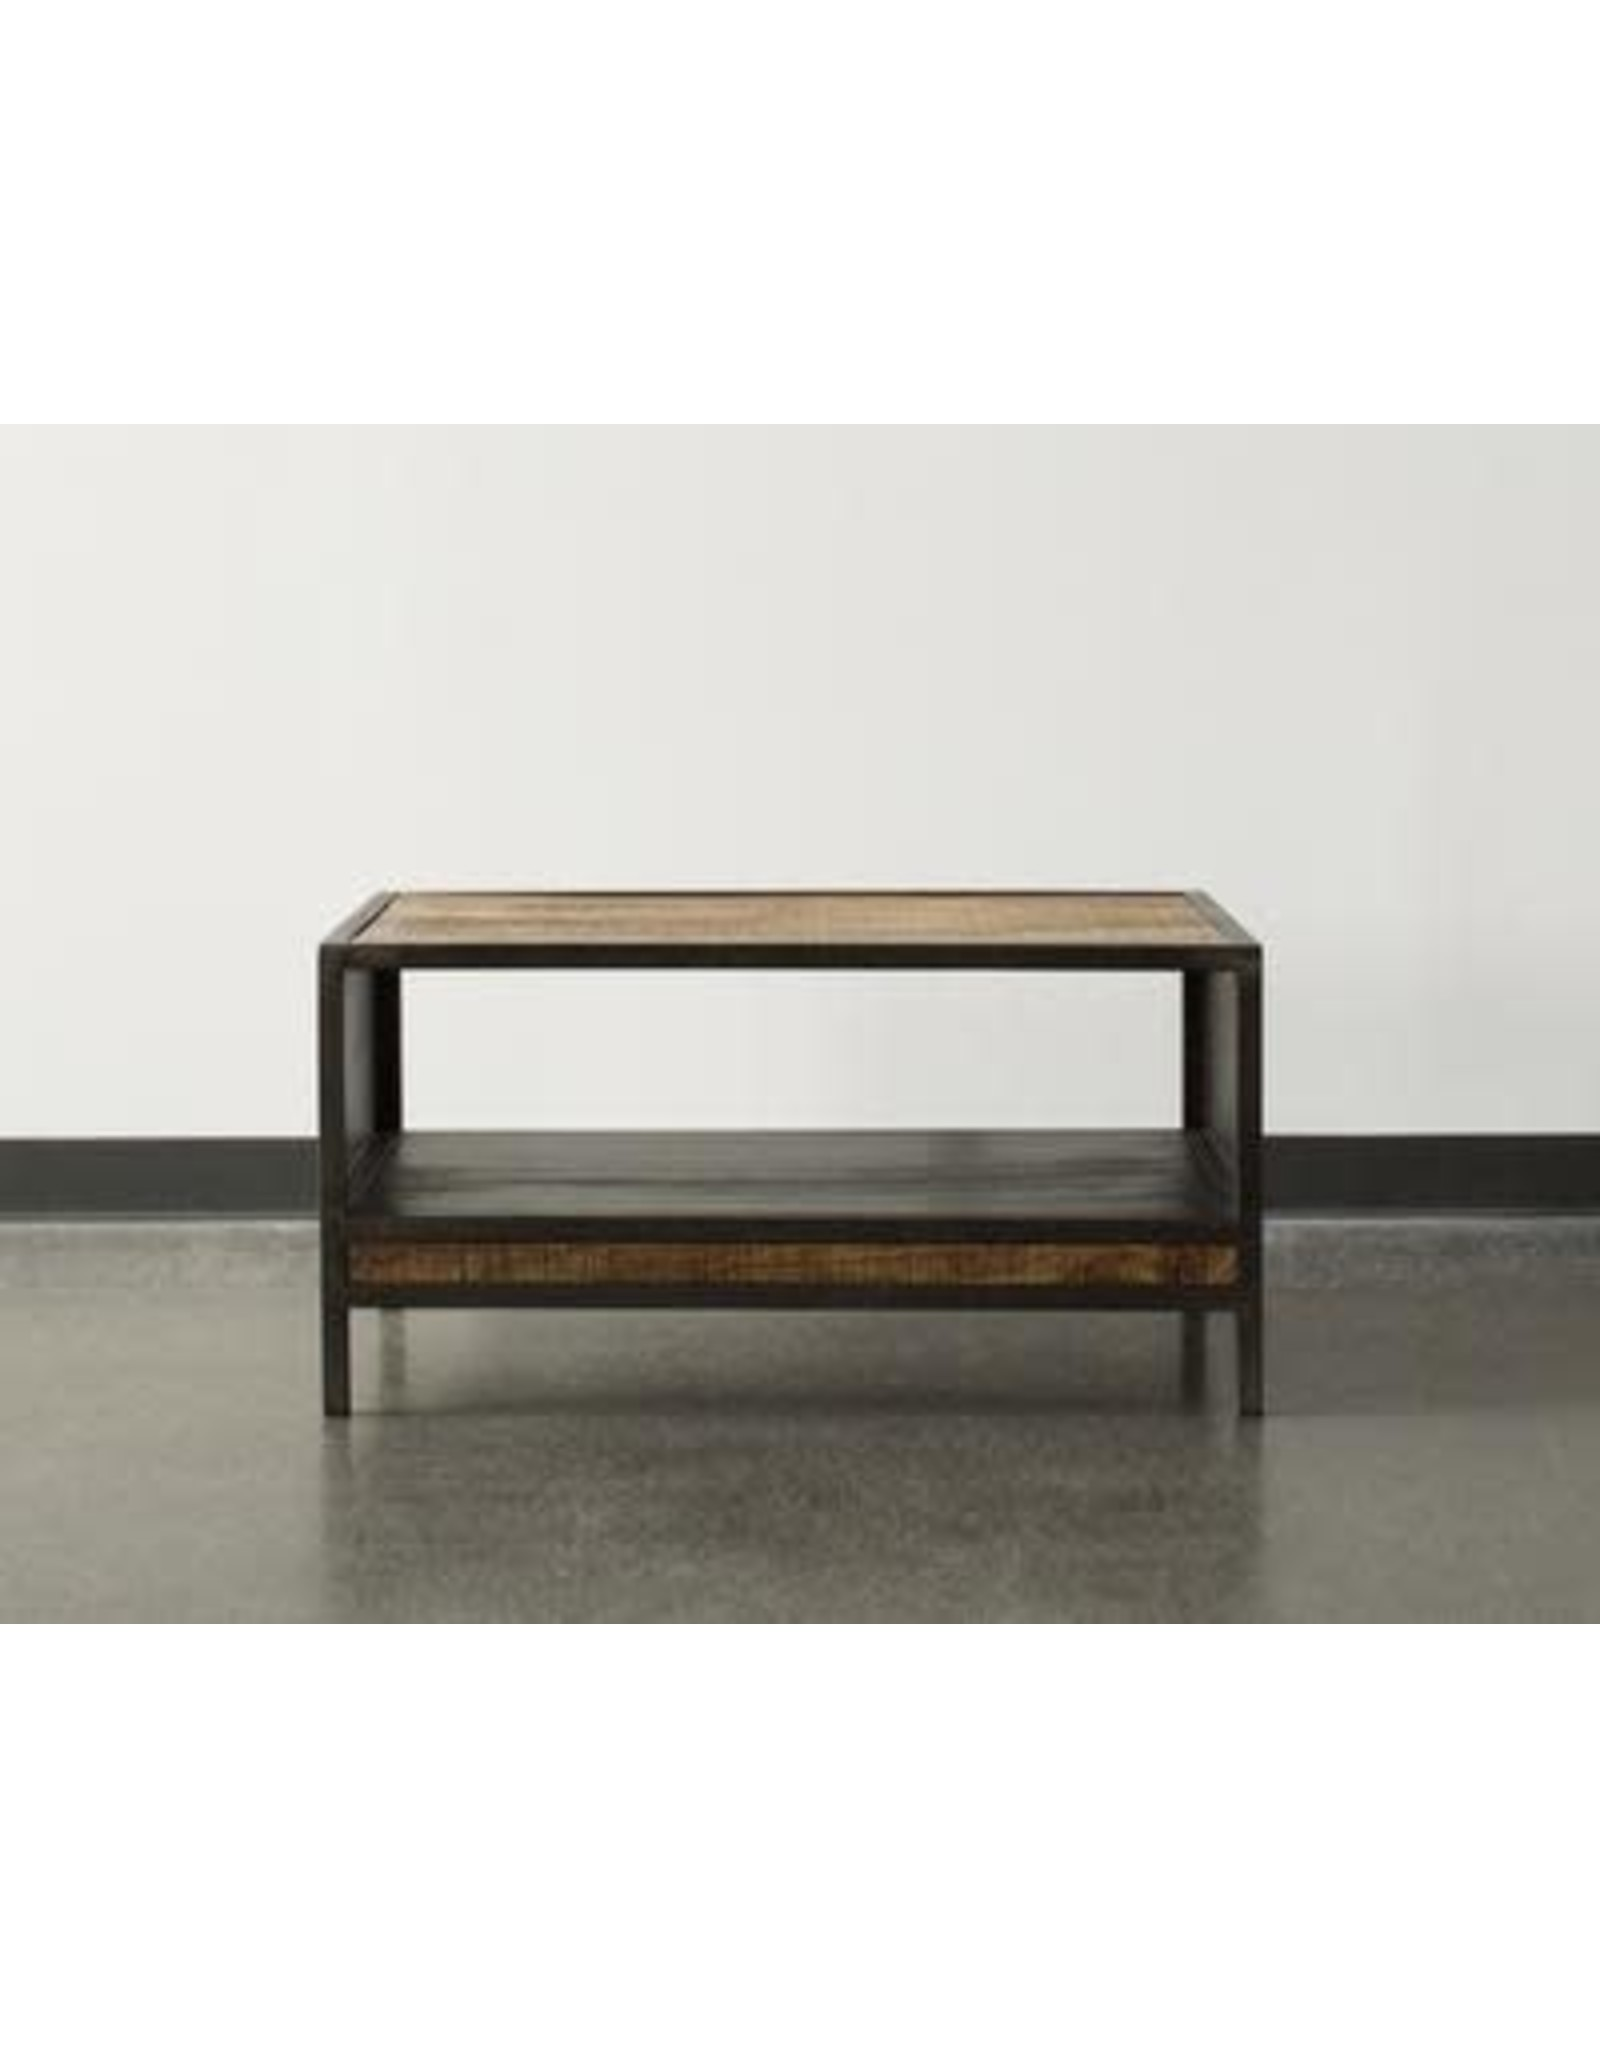 "Table basse industrielle Melbourne 18""x35.6""x23.5"""